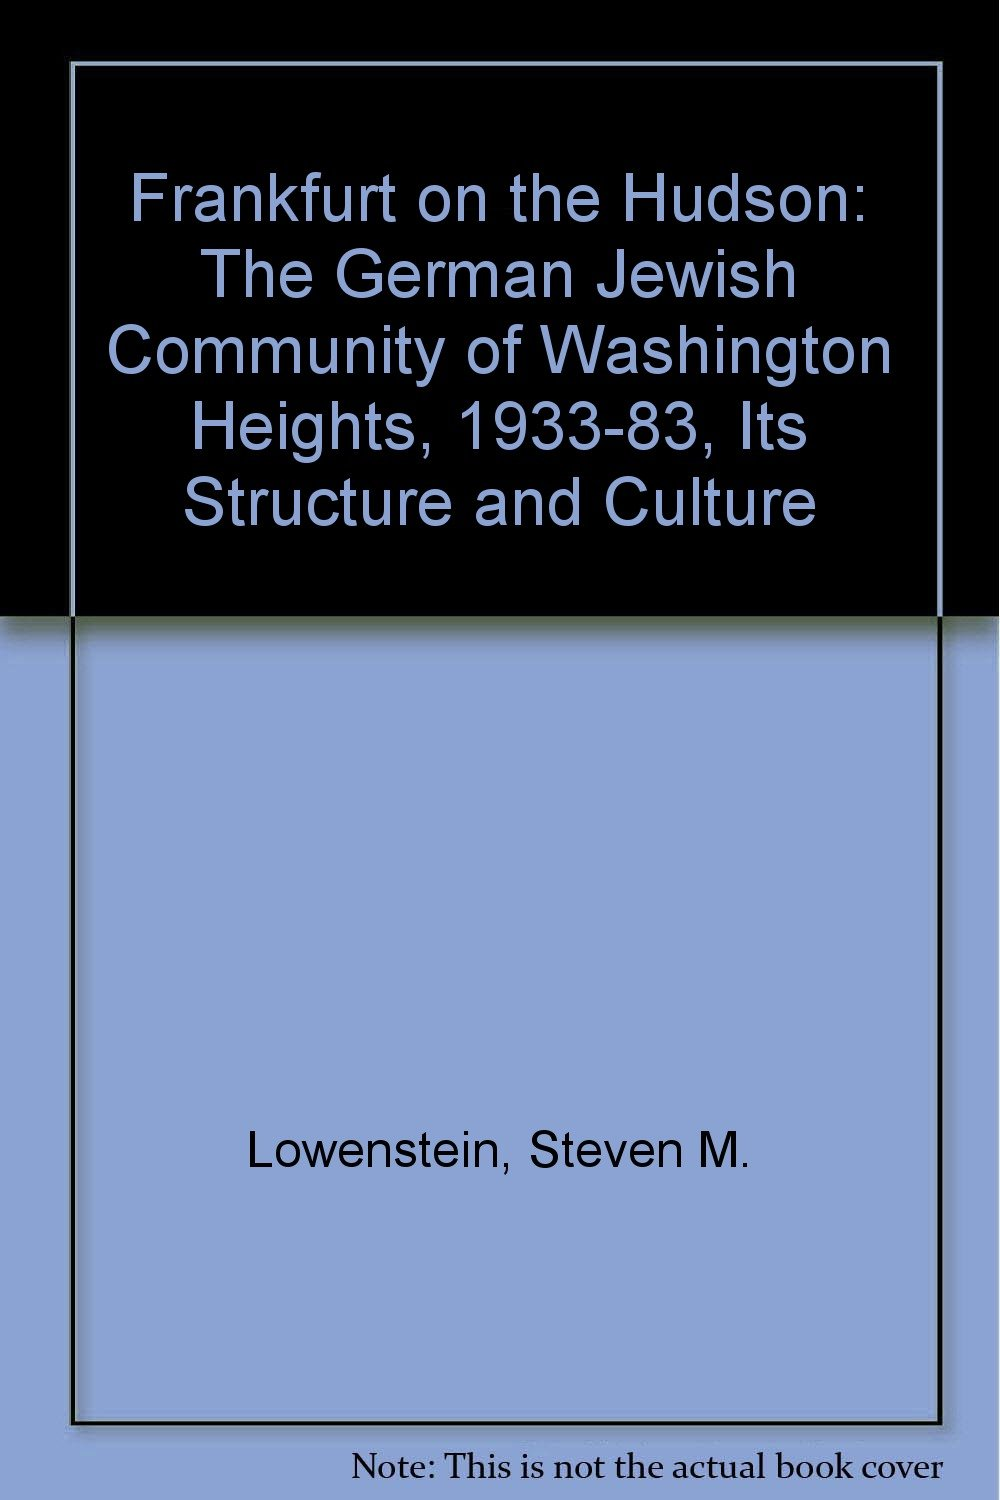 Frankfurt on the Hudson: The German Jewish Community of Washington Heights, 1933-1983, Its Structure and Culture free download